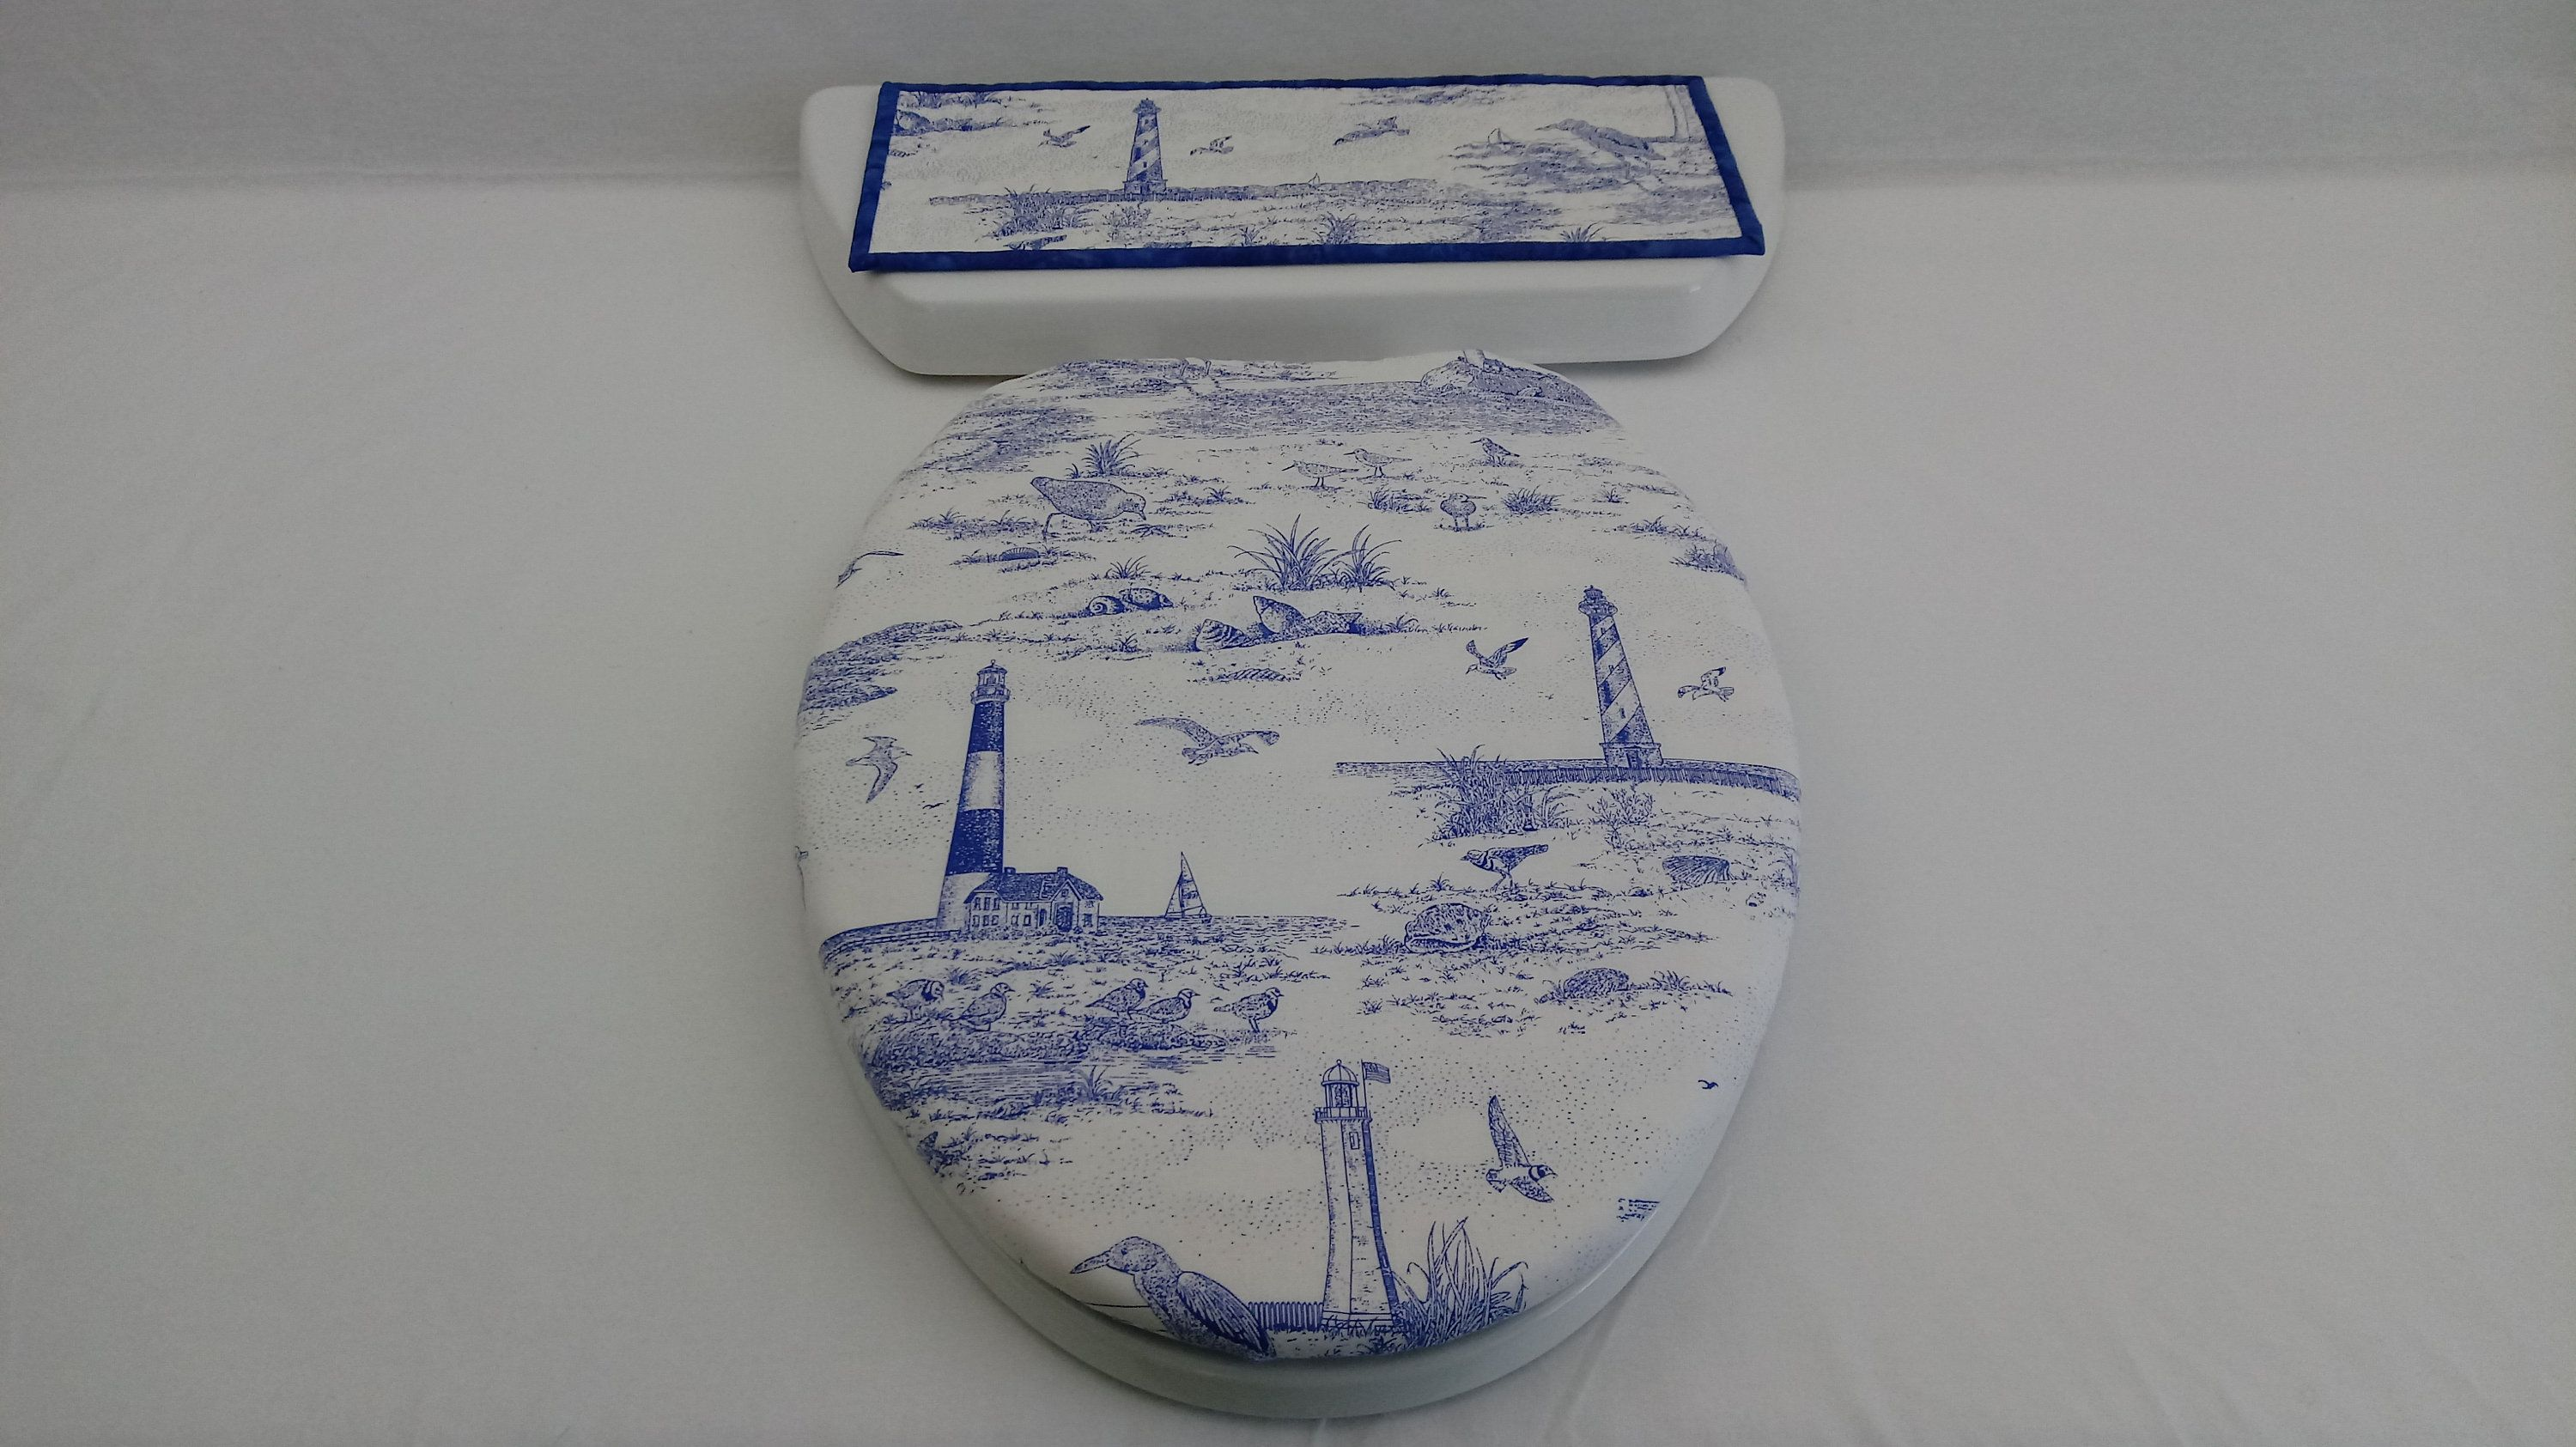 Groovy Lighthouse Toilet Seat Cover Set Toilet Tank Lid Topper Machost Co Dining Chair Design Ideas Machostcouk